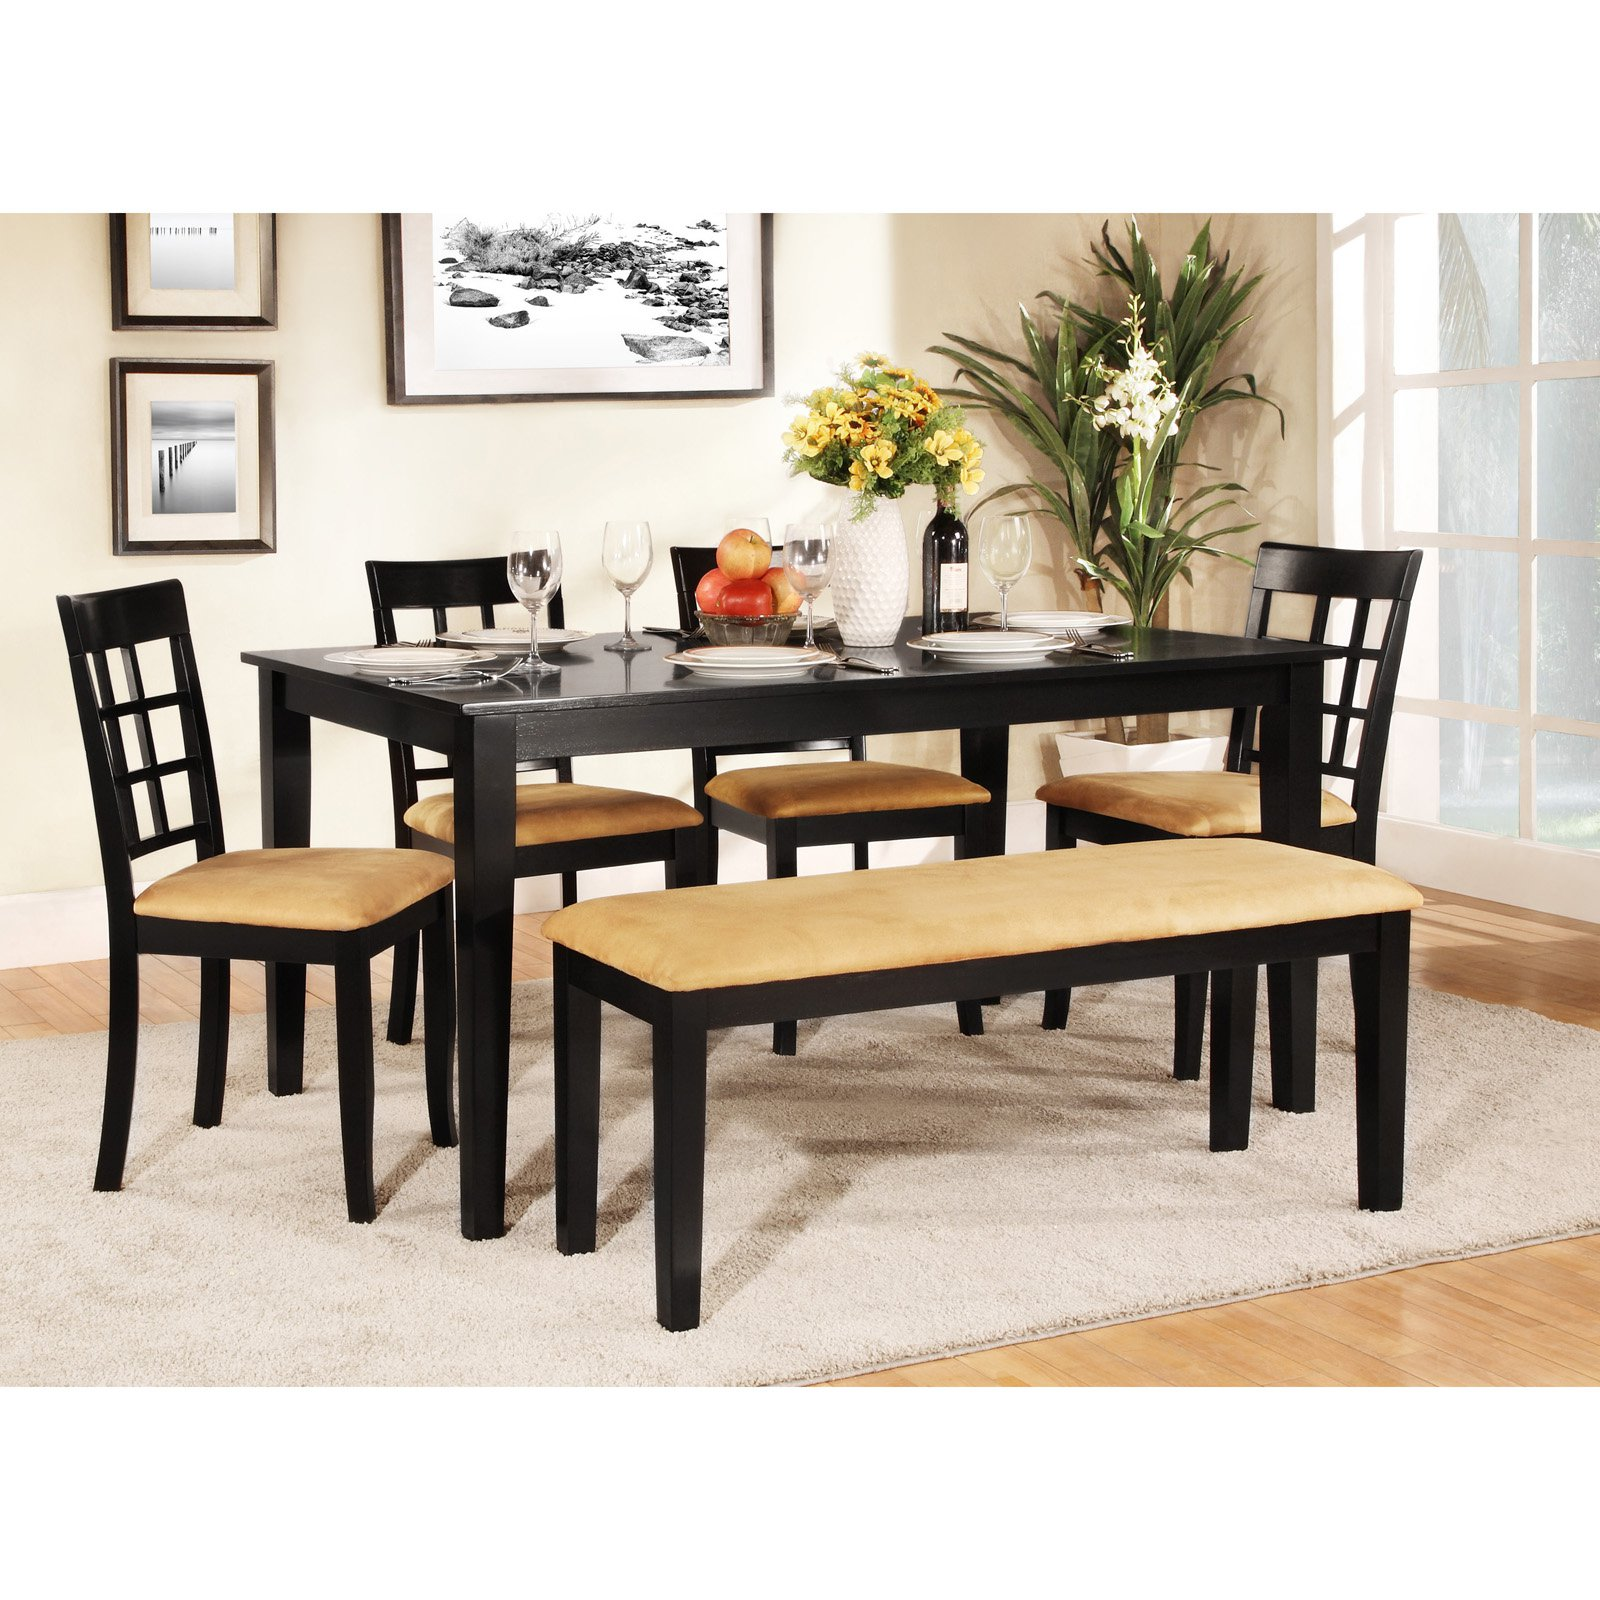 Homelegance Tibalt 6 pc. Rectangle Black Dining Table Set - 60 in. with Window Back Chairs & Bench